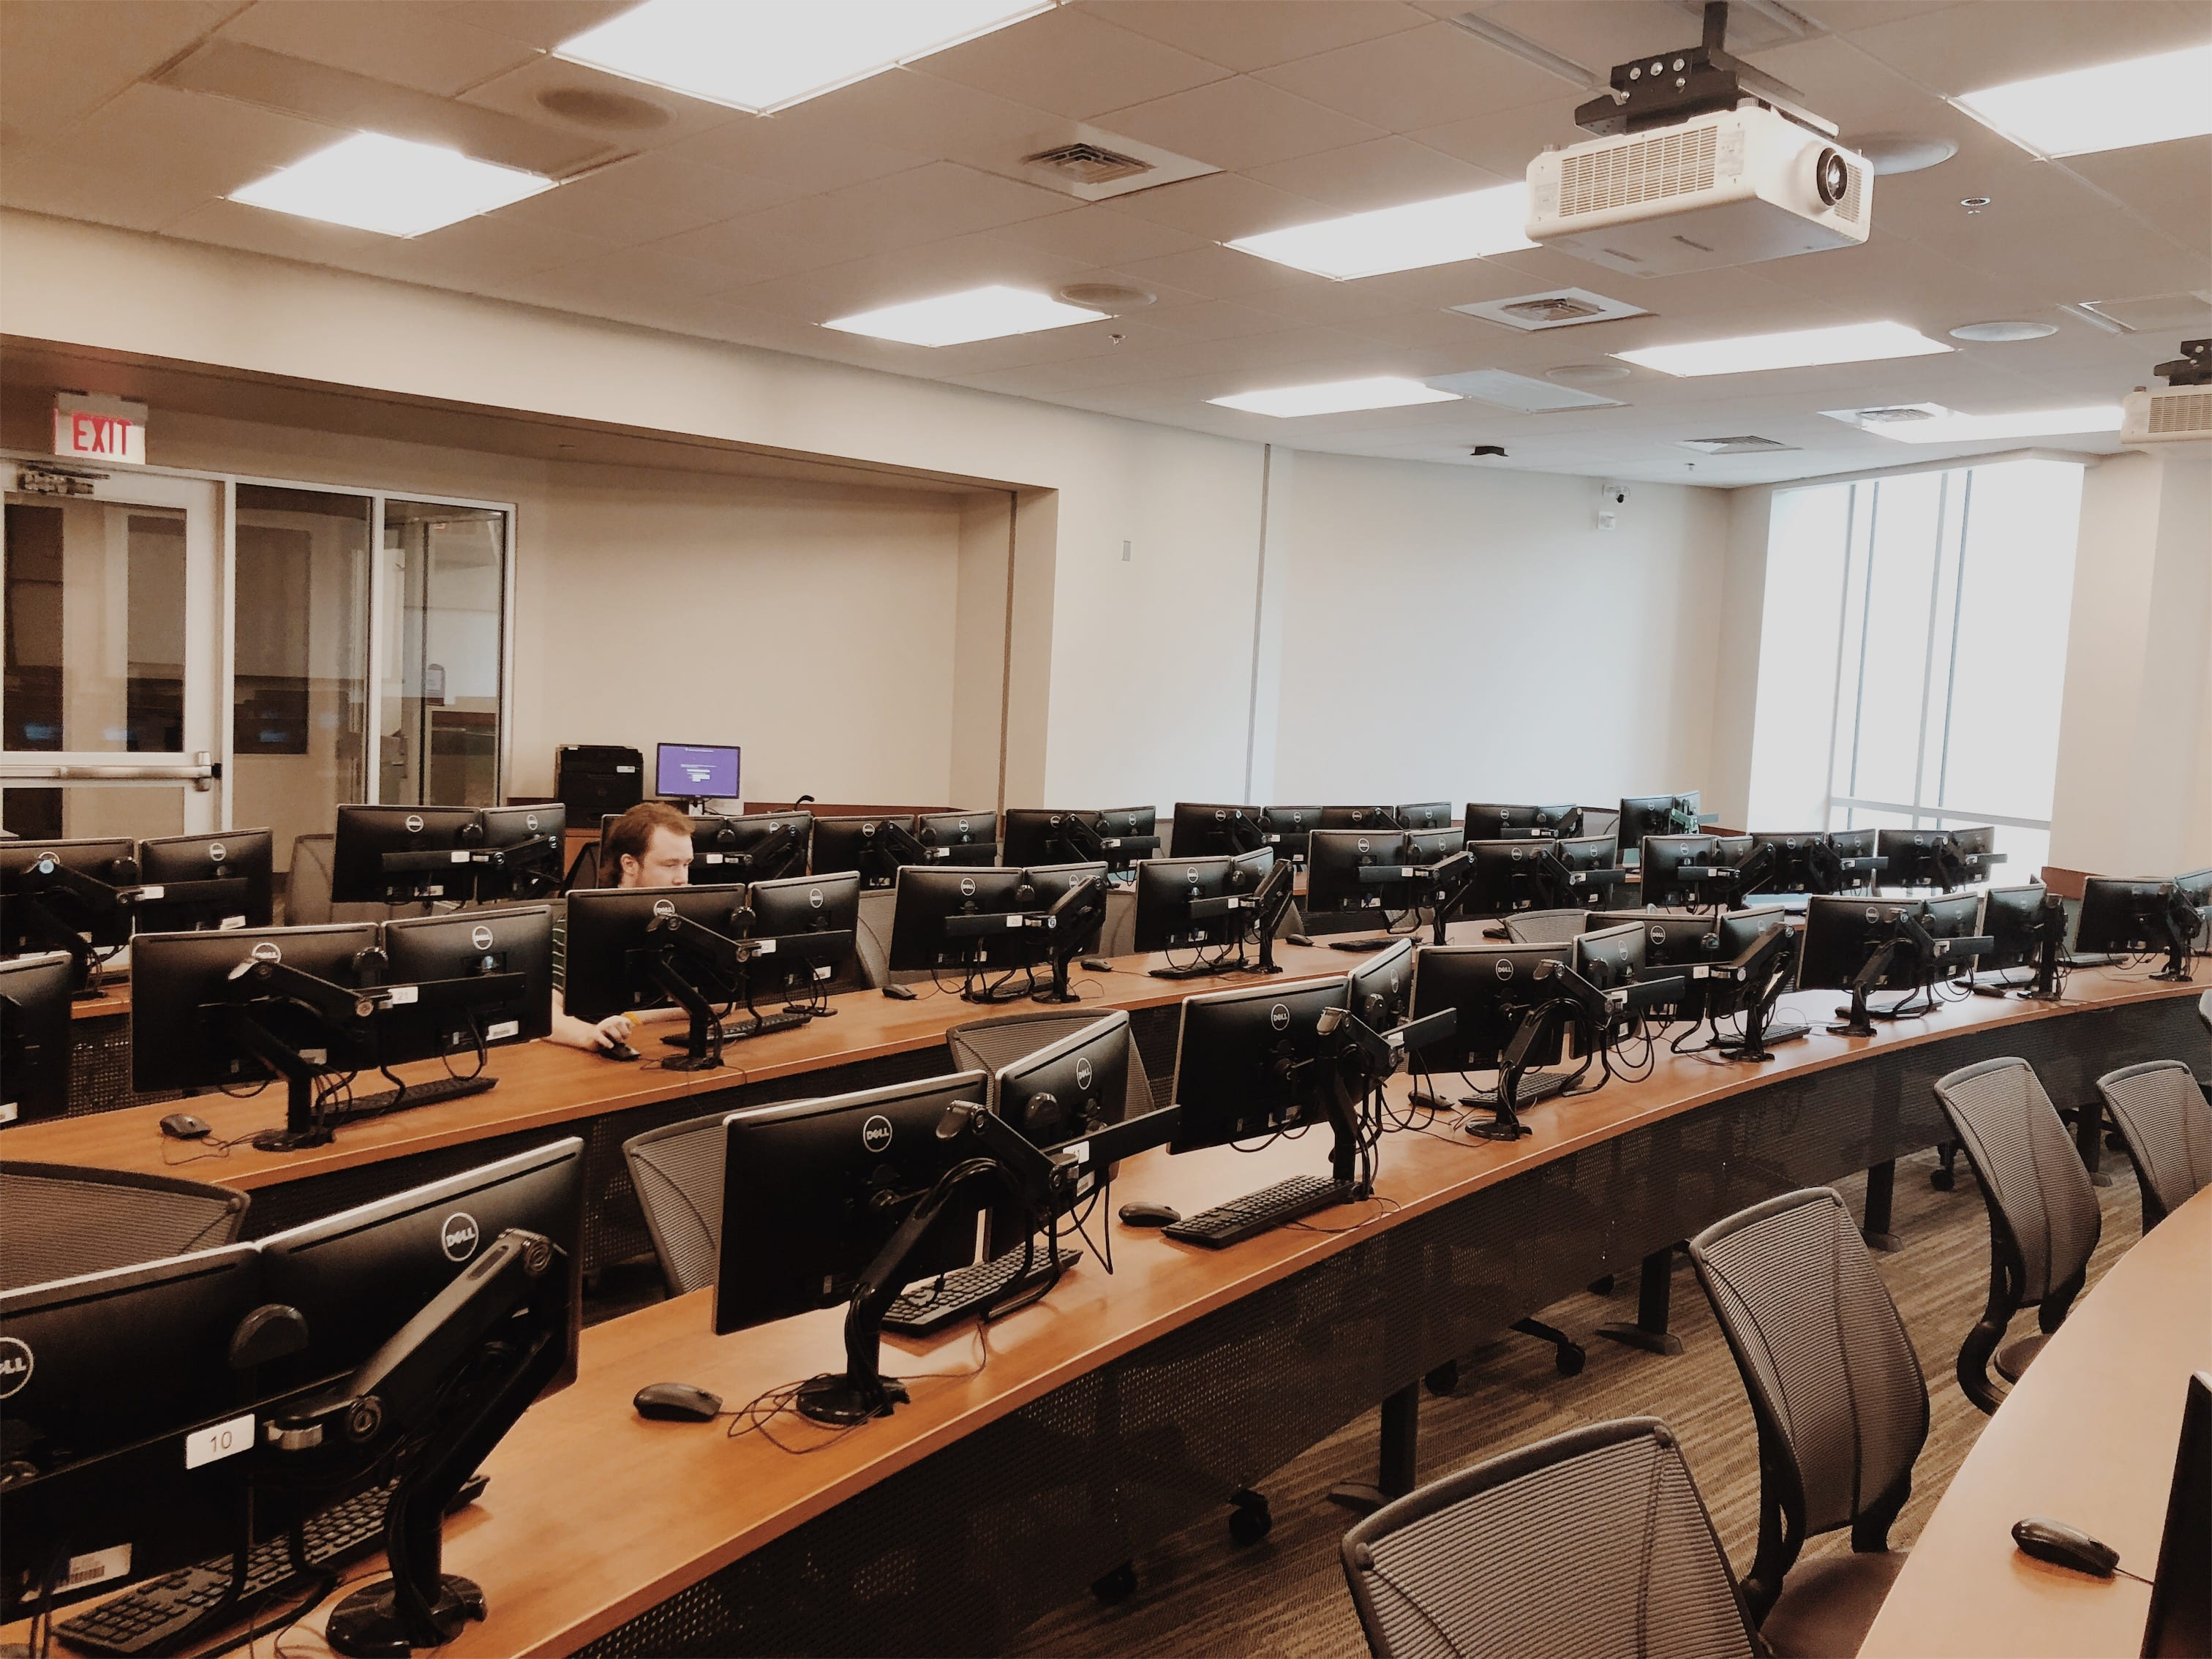 More than two dozen double computer monitors line long wooden tables in a room occupied by a single student.